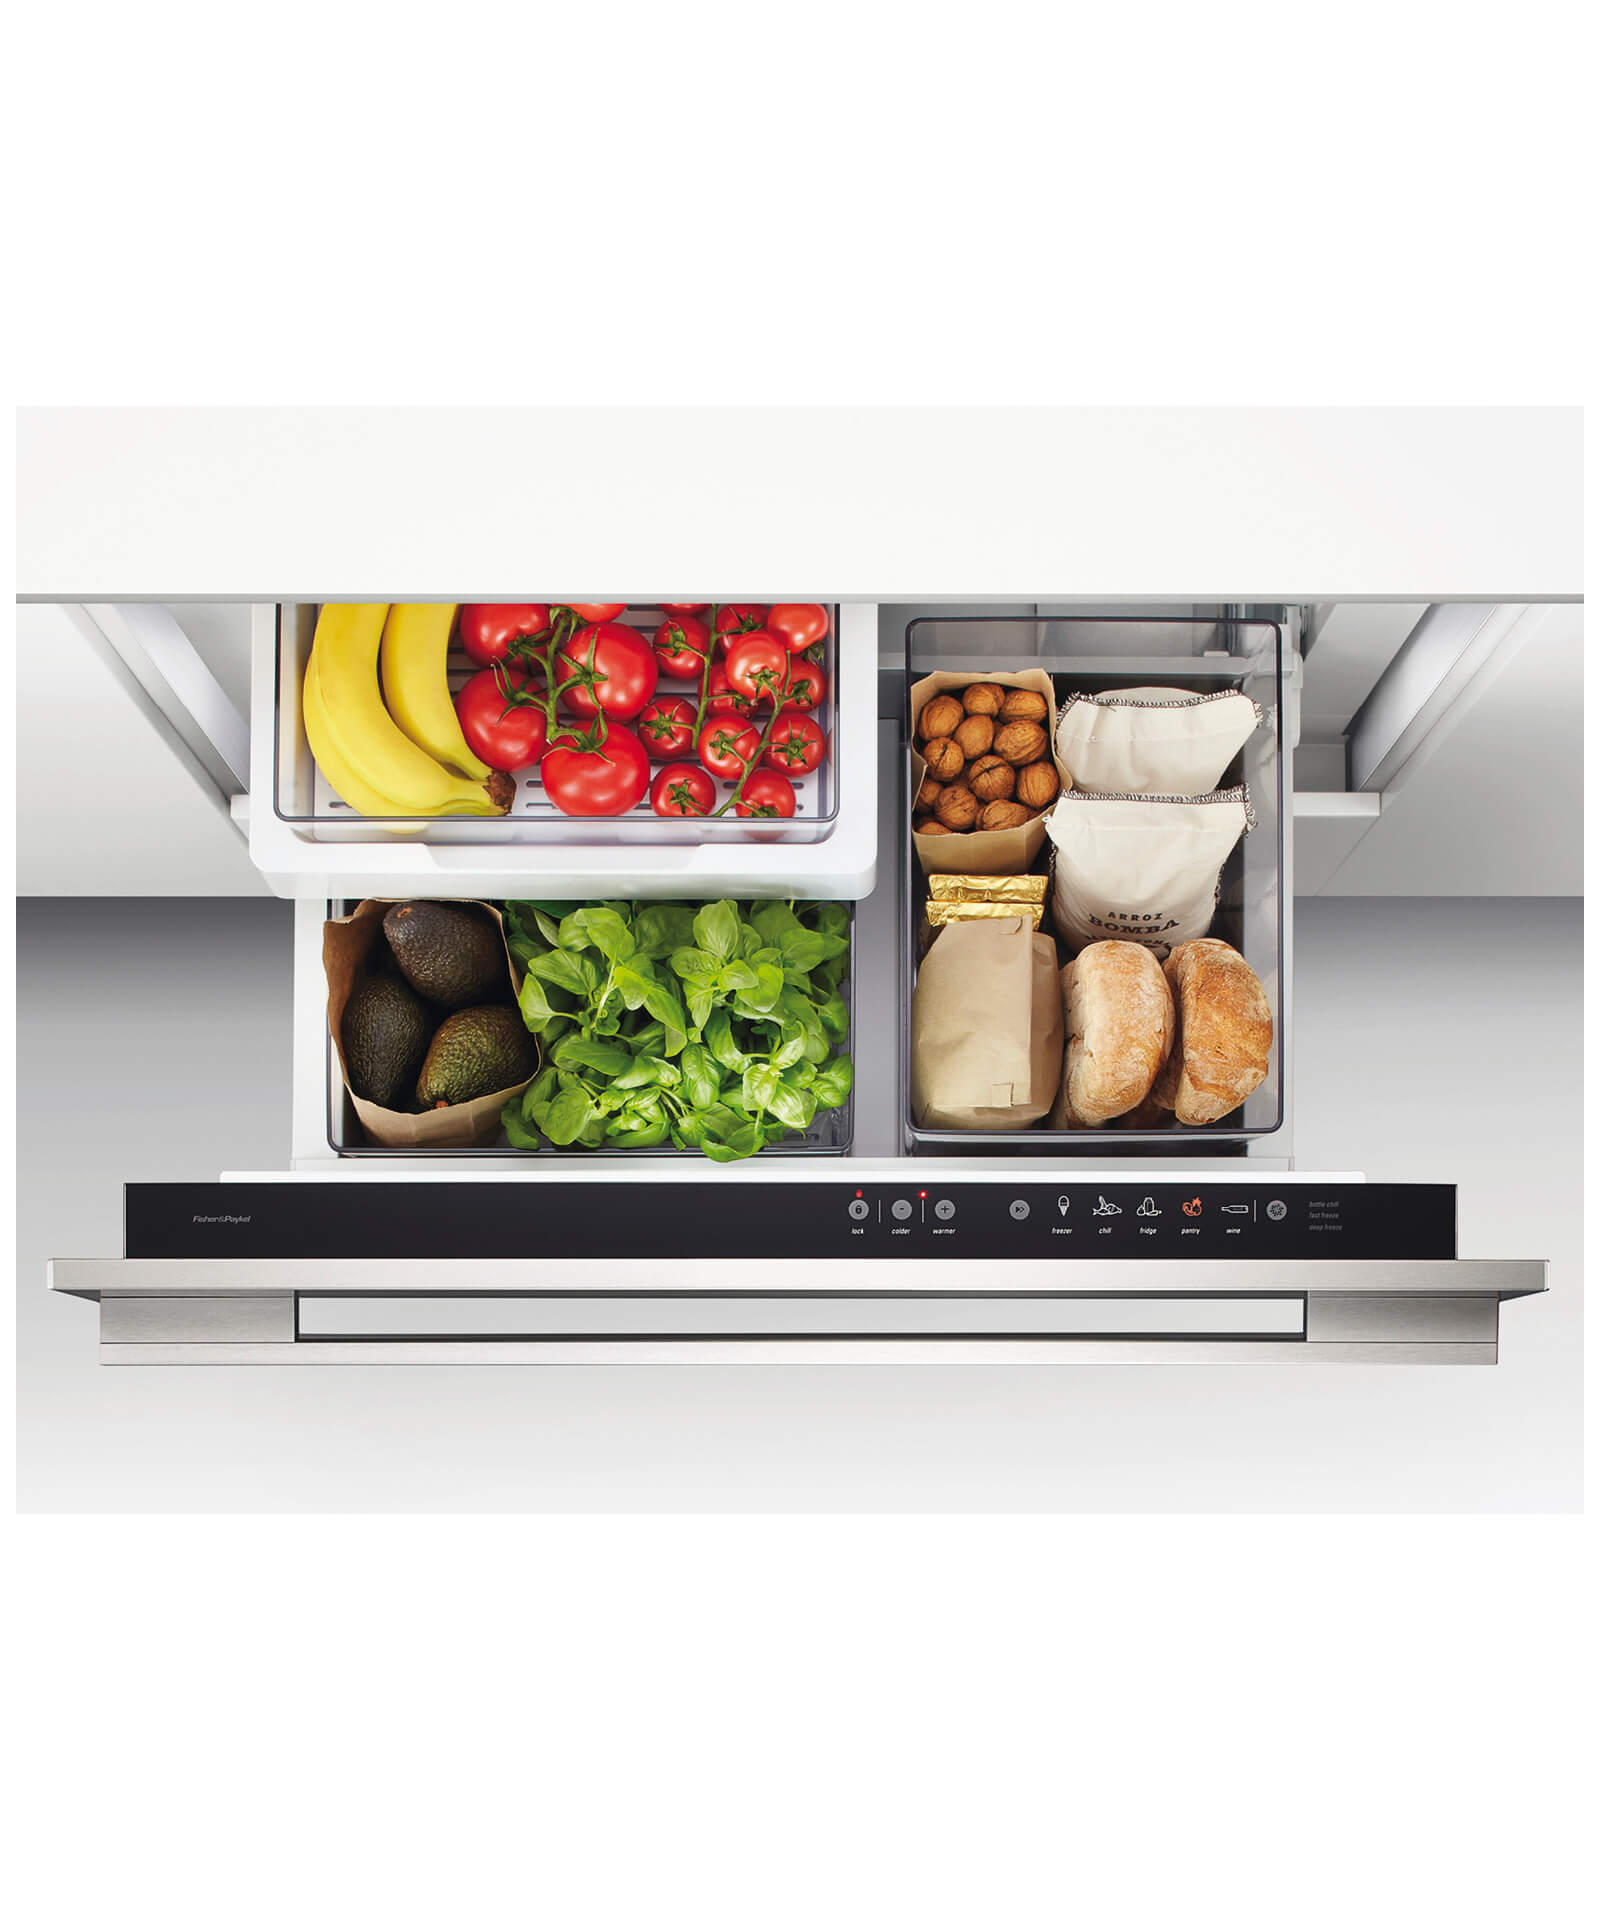 fisher and paykel fridge rf610adux3 manual